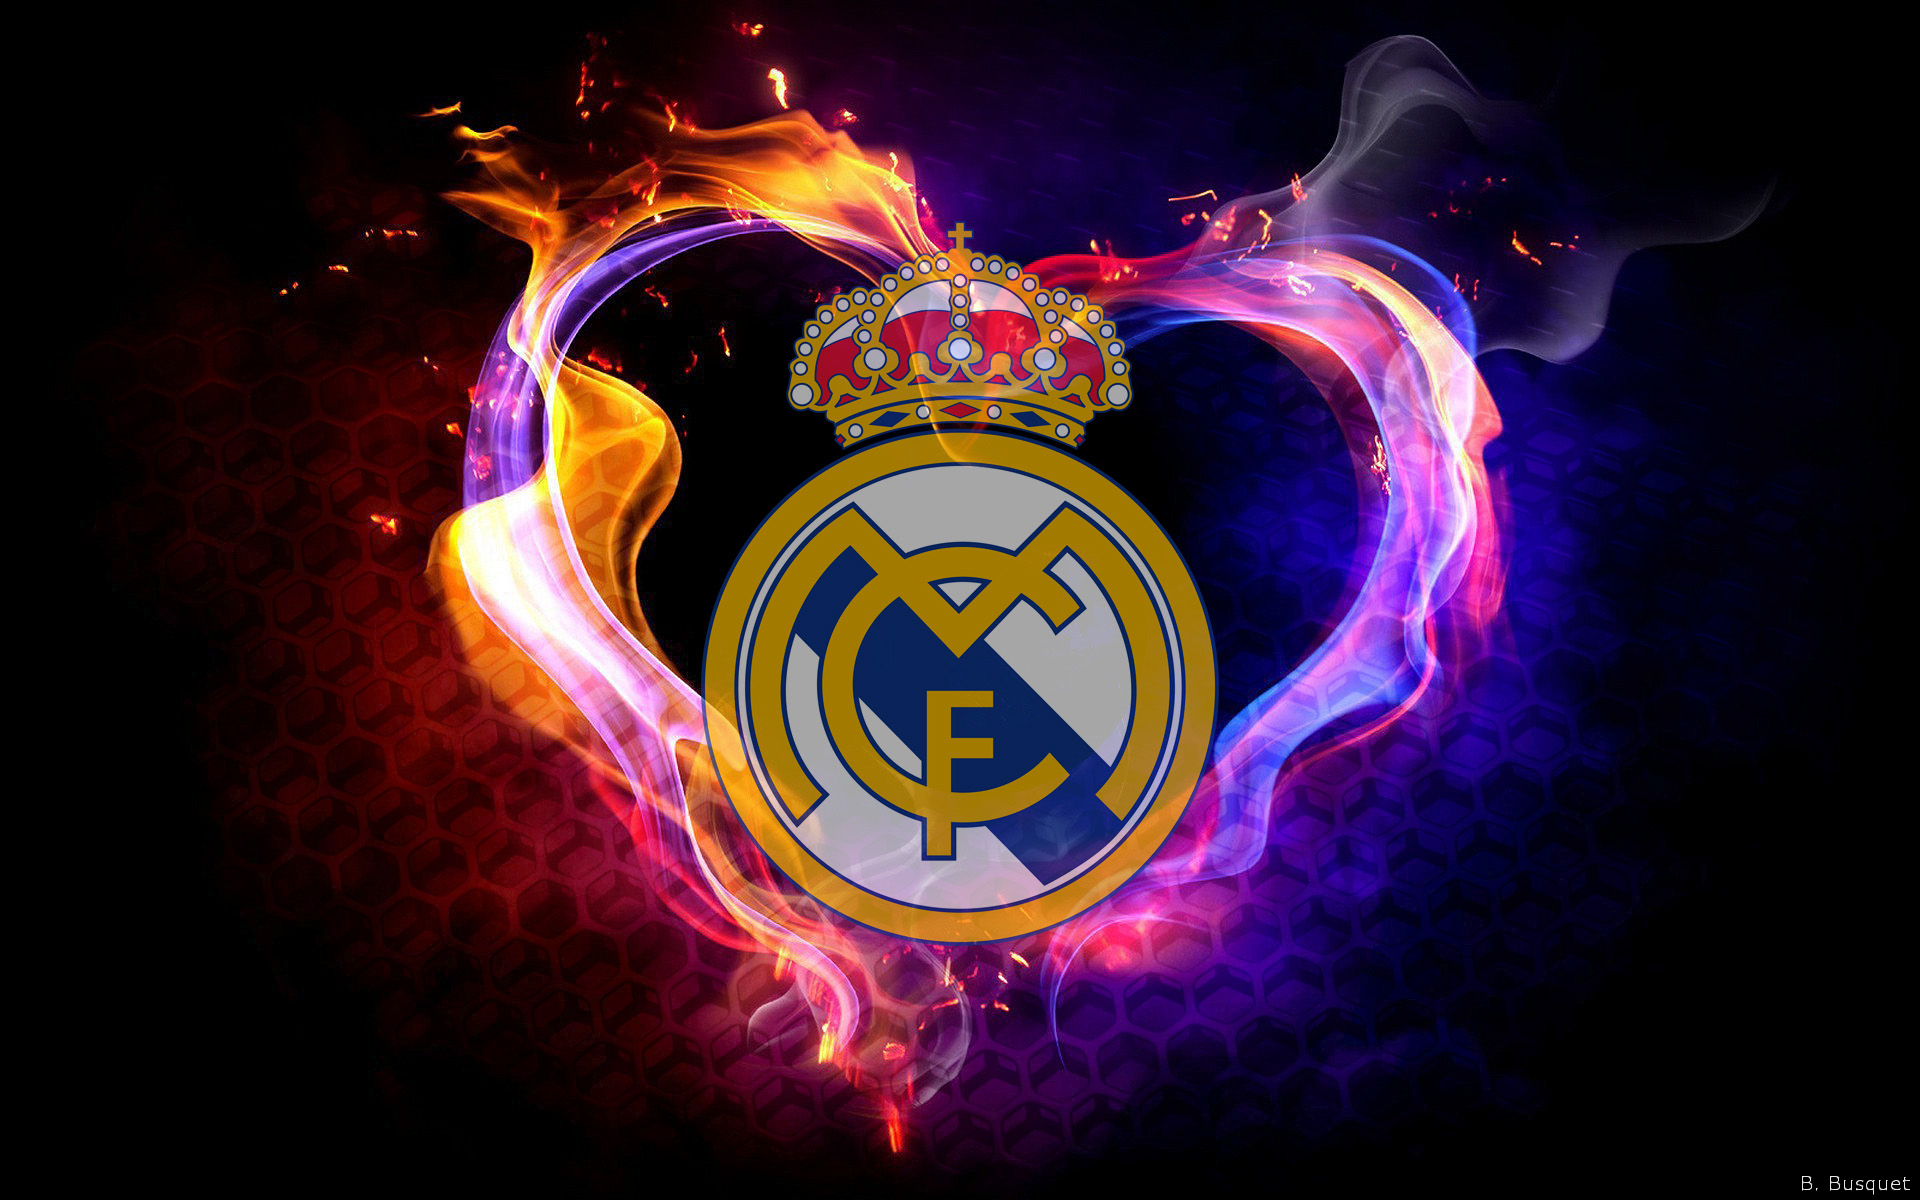 12 real madrid logo hd wallpapers background images wallpaper abyss voltagebd Choice Image